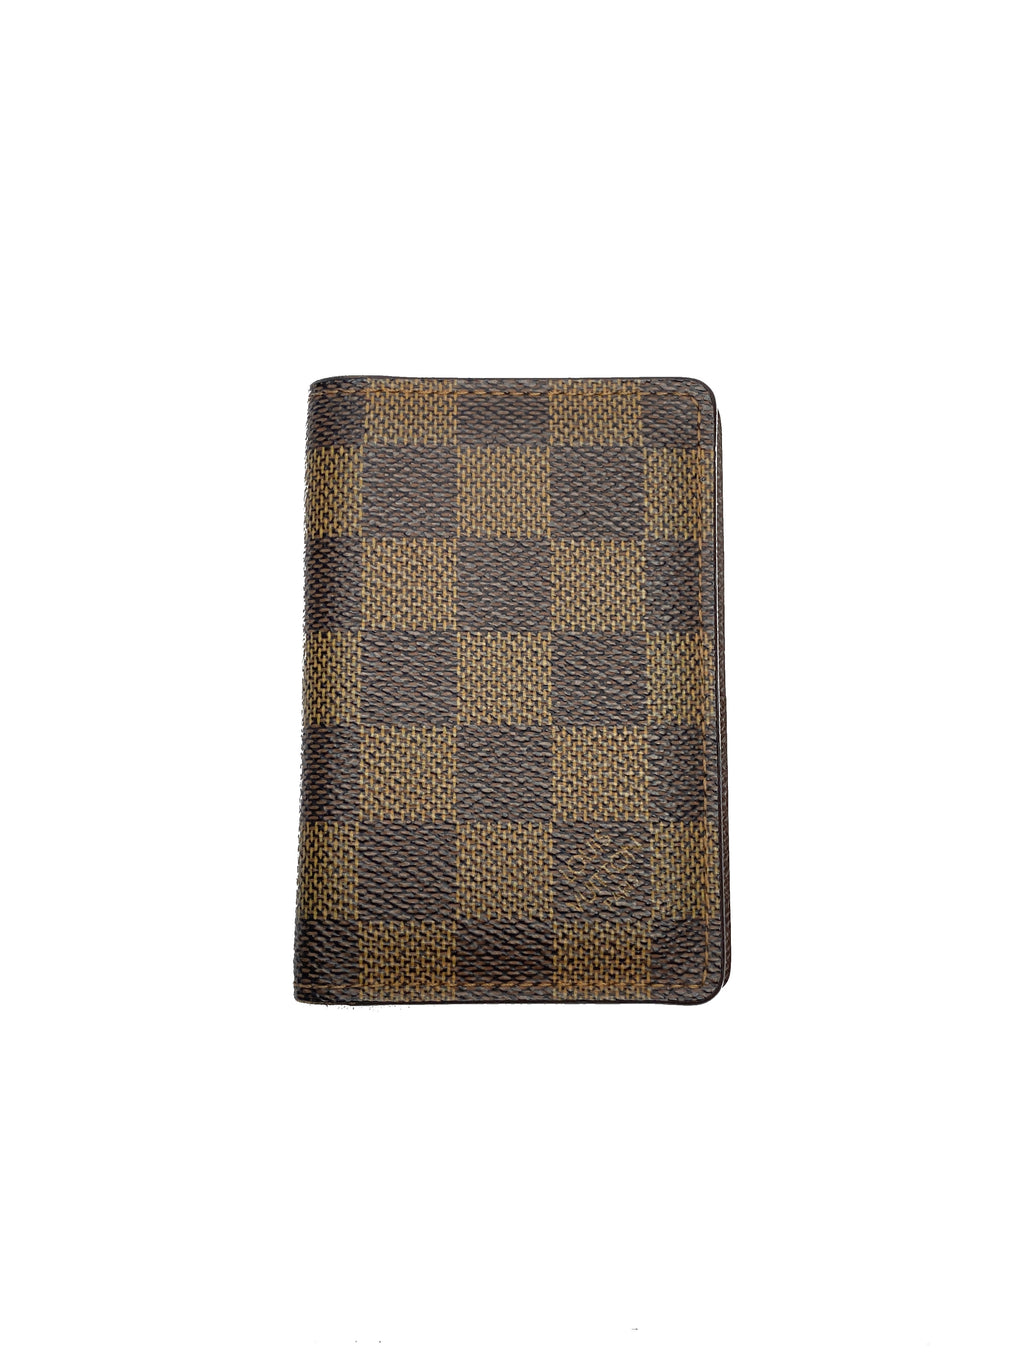 LOUIS VUITTON - POCKET ORGANISER WALLET IN DAMIER EBENE